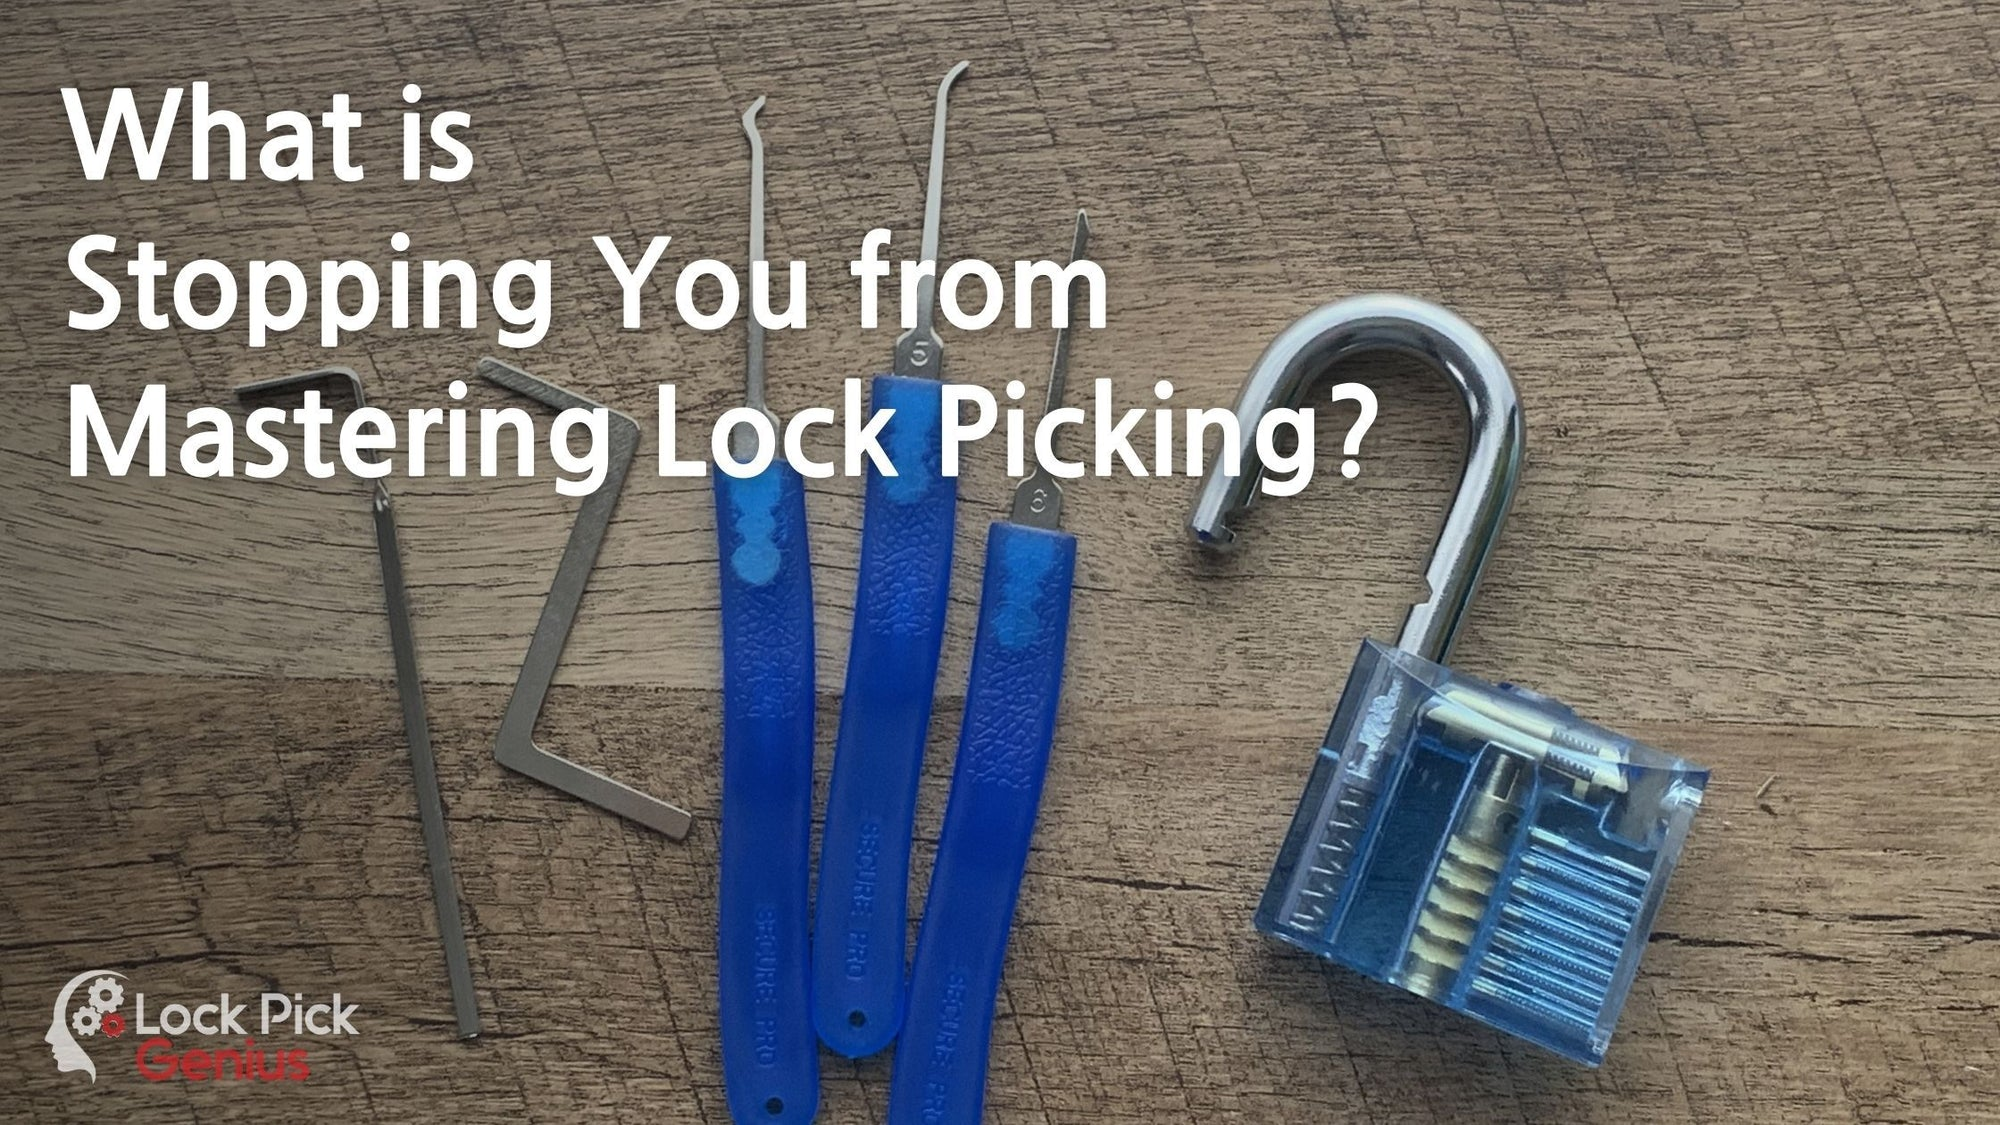 What Is Stopping You from Mastering Lock Picking?